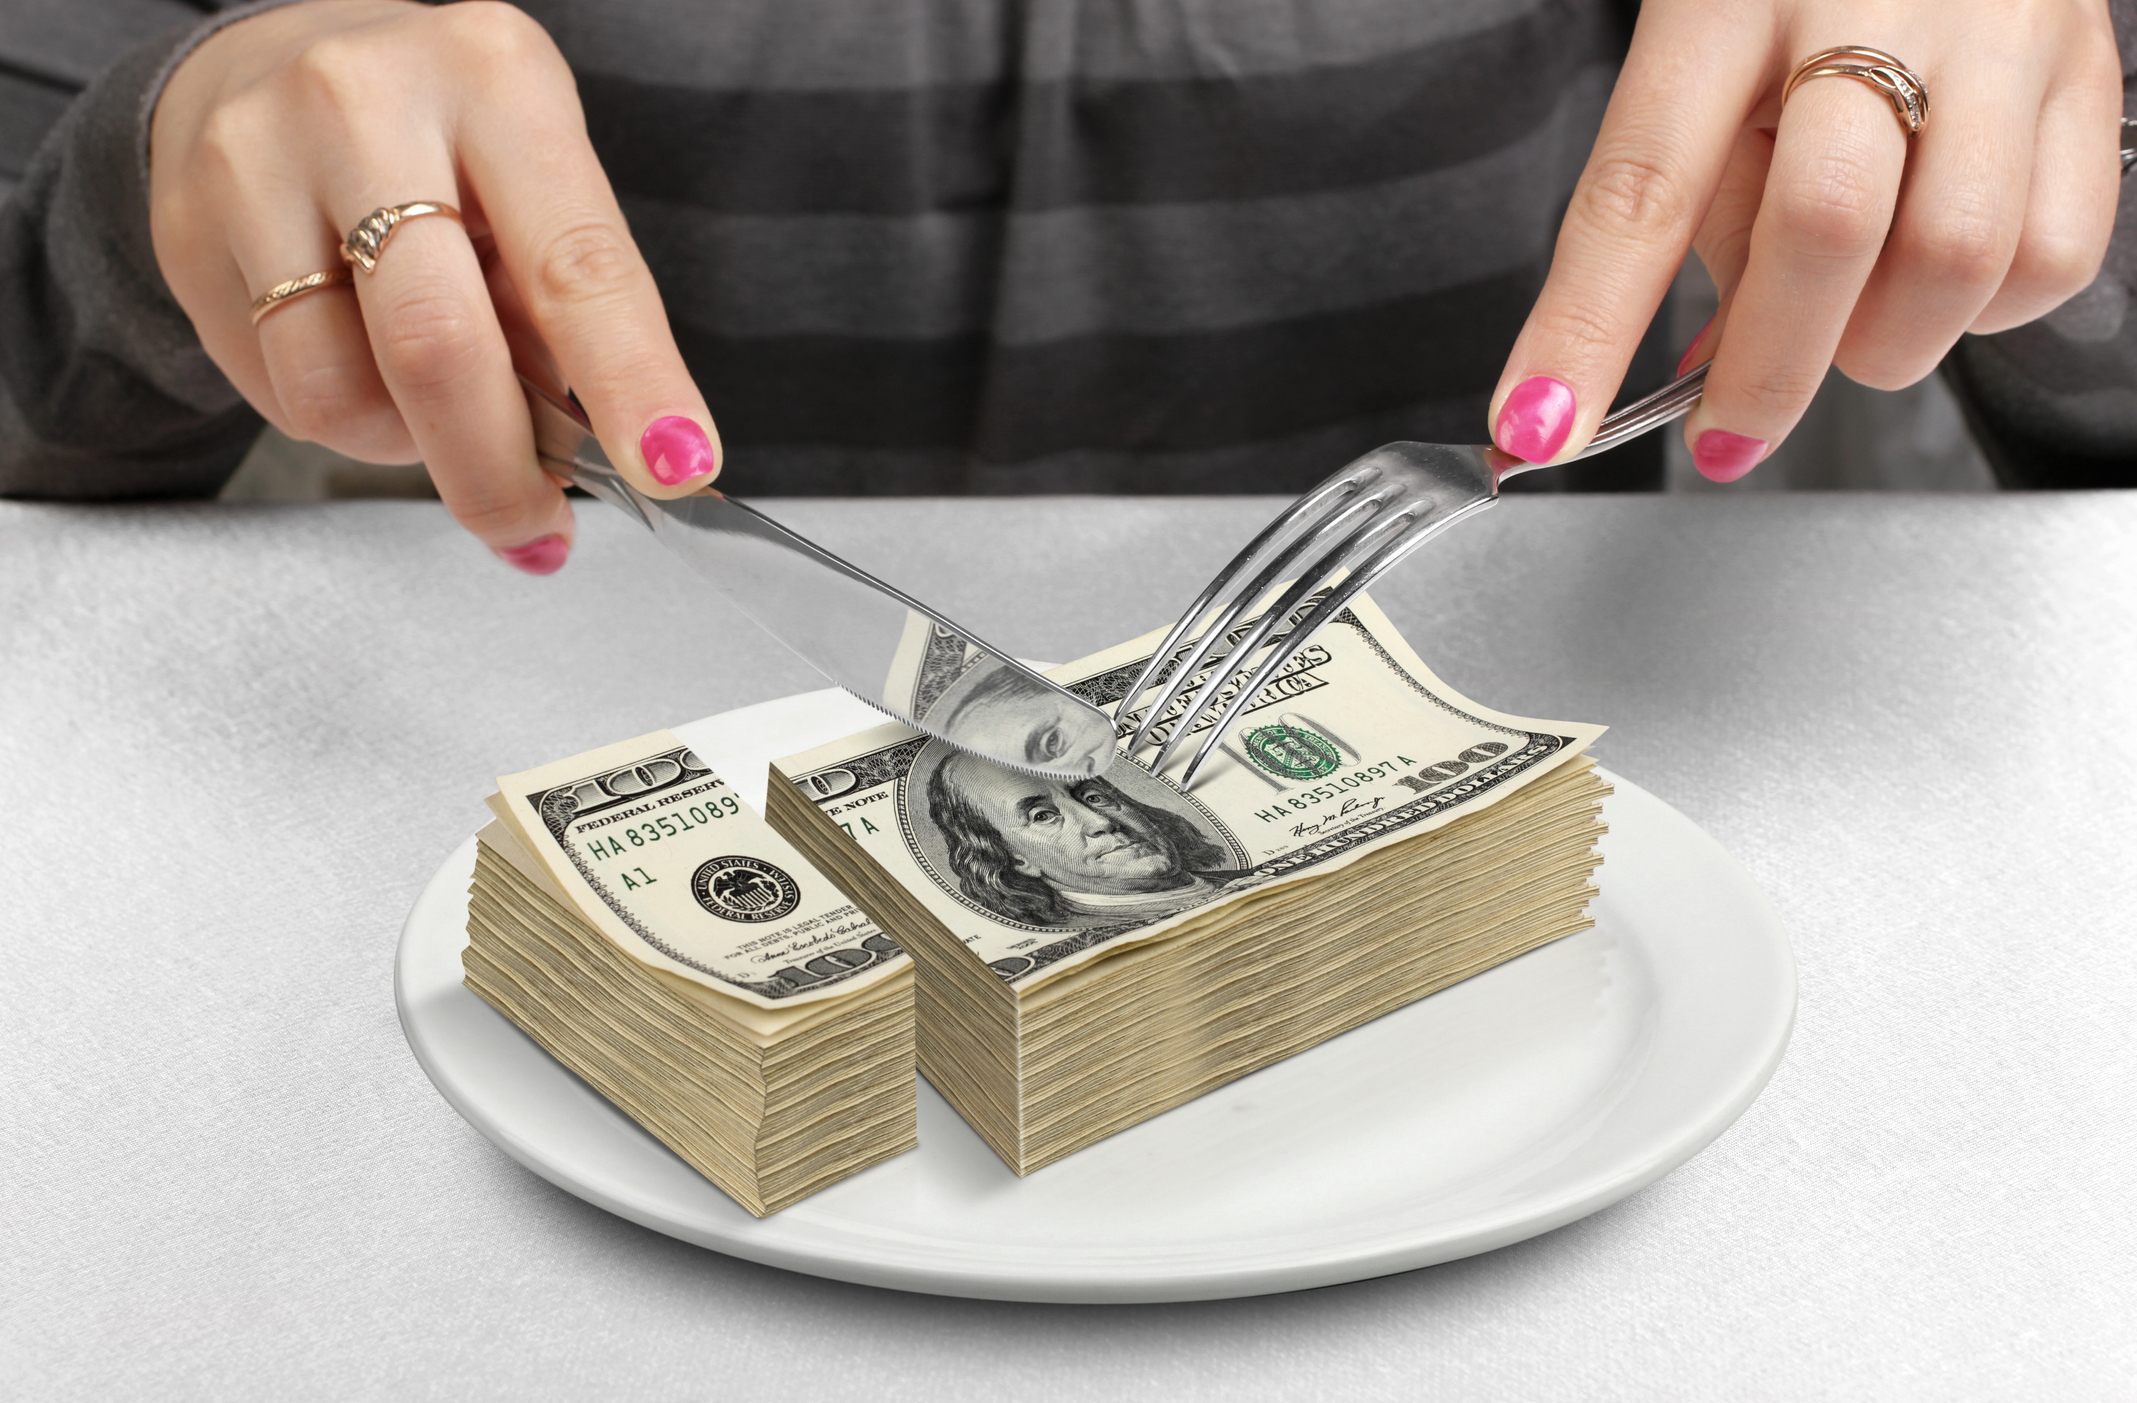 Took a Pay Cut at Work? 3 Money Moves to Make